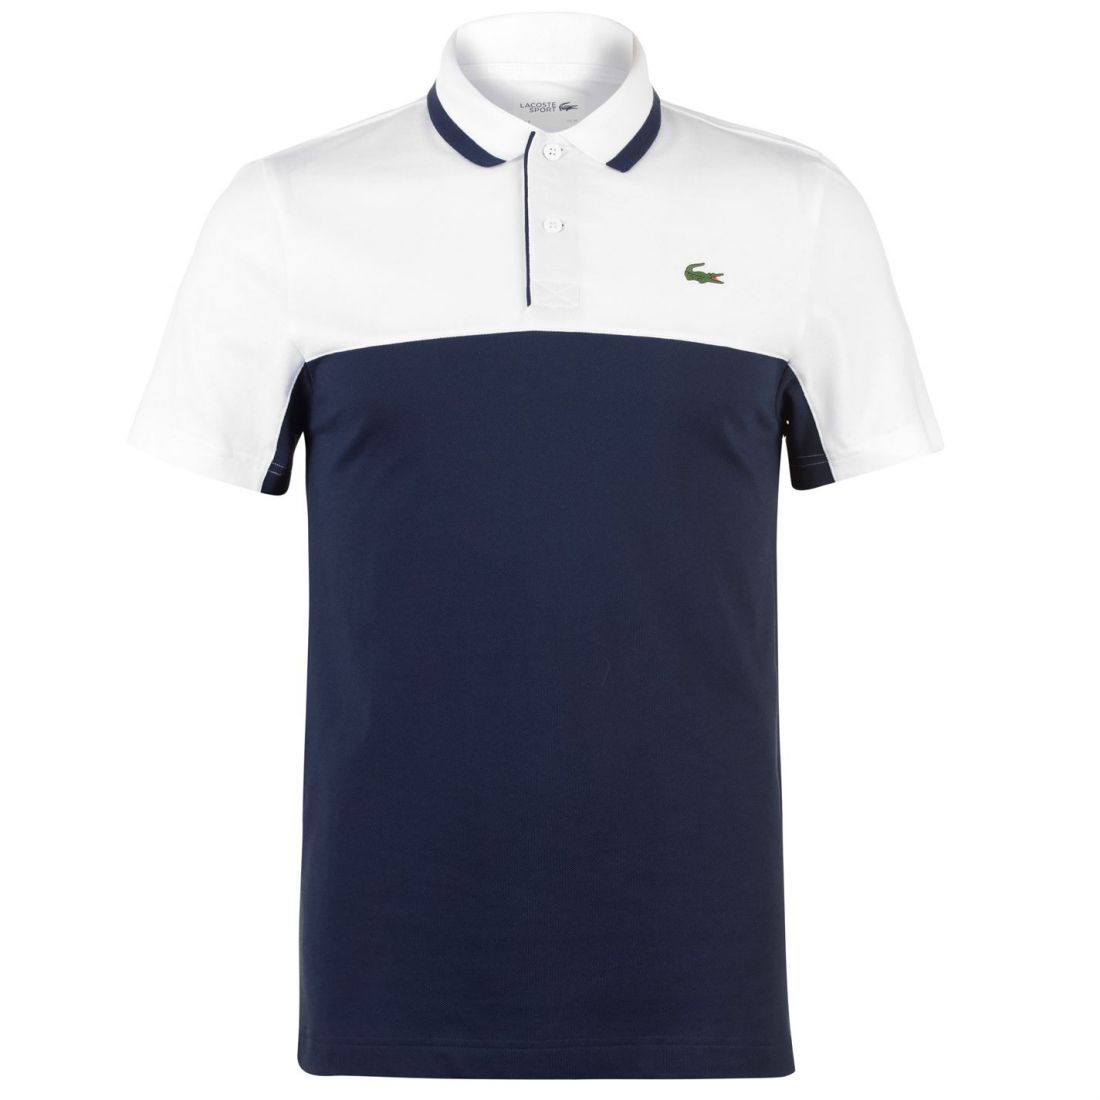 Shirts Cheap Ebay Polo Lacoste Cheap Lacoste UzMSqVpG